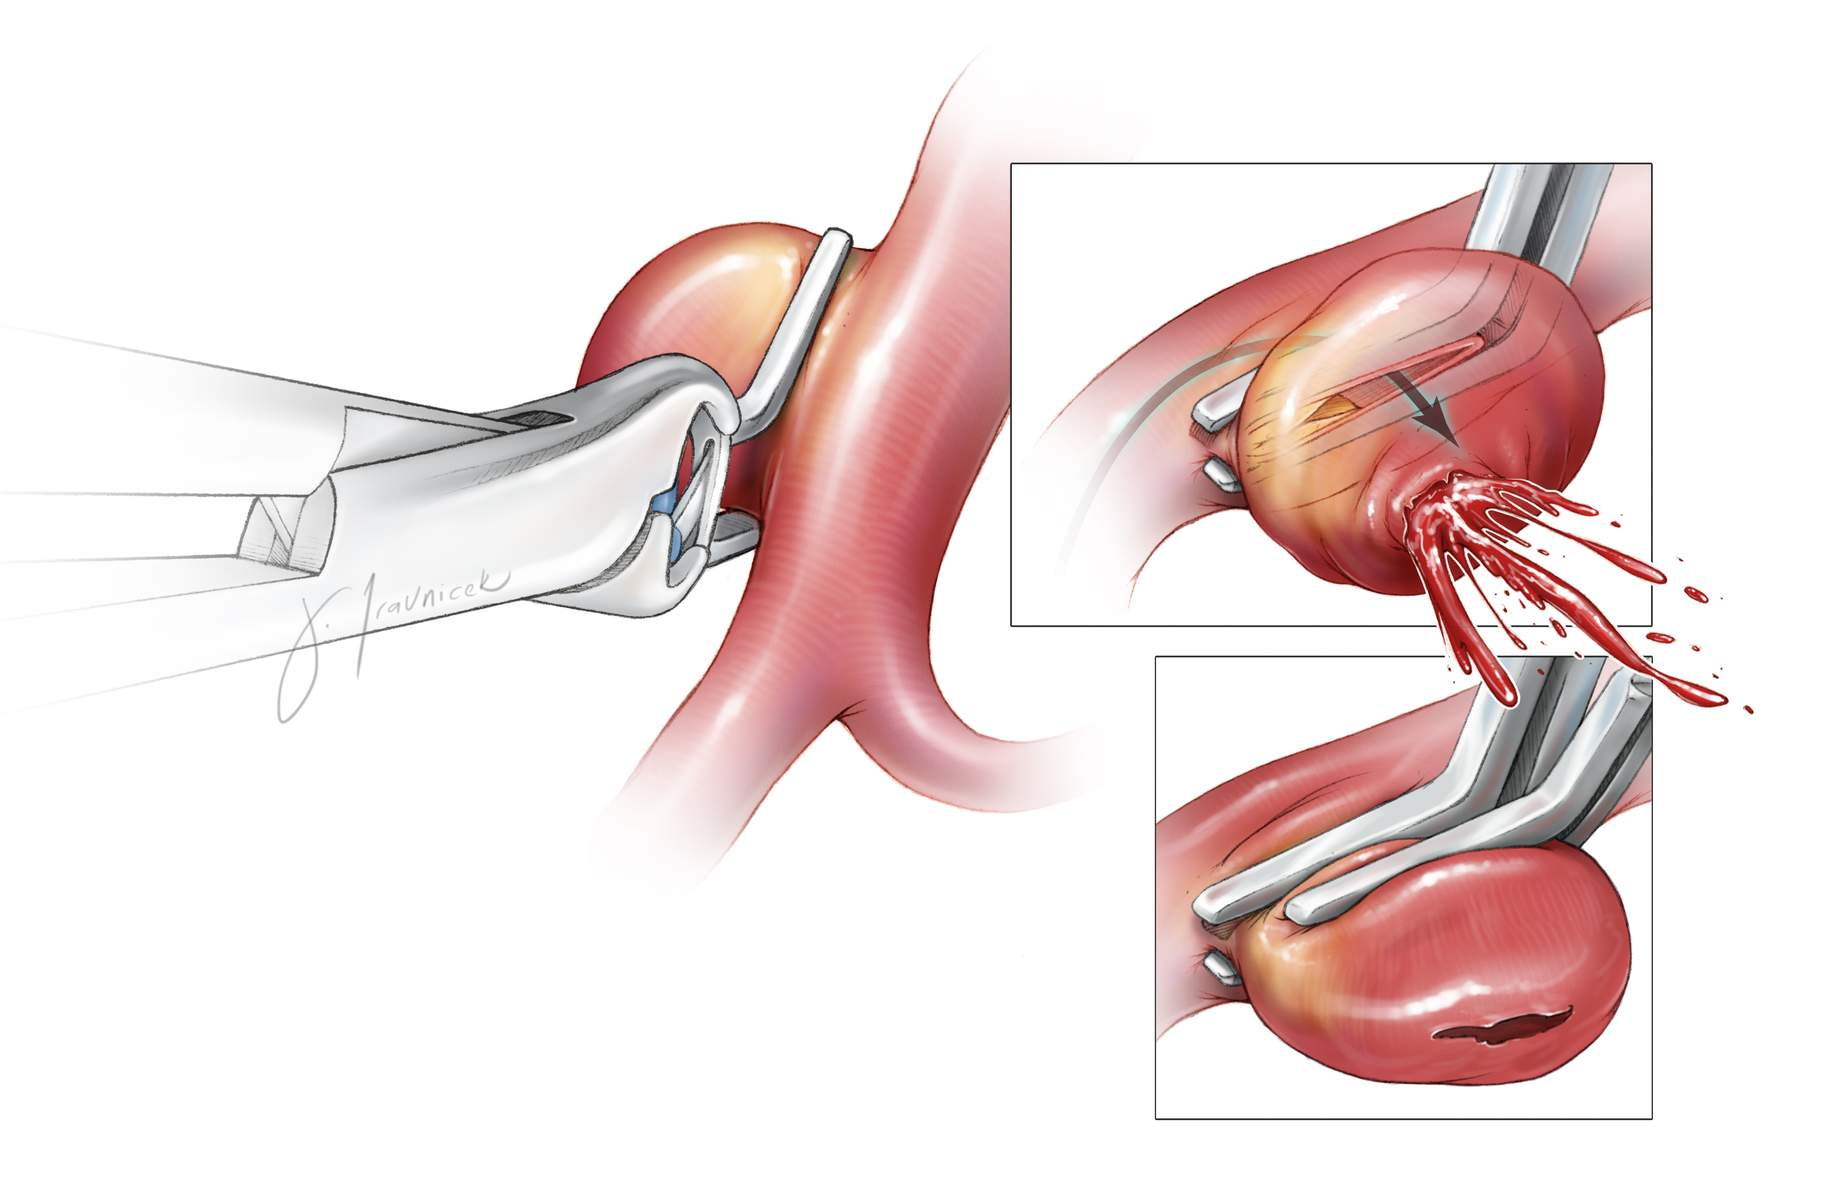 Figure 3: Incomplete closure of the atherosclerotic neck can cause IOR. In this sketch, the distal atheroma prevents approximation of the clip blades. Placement of a second tandem clip short of the atheroma can collapse the neck. If the atheroma is at the proximal neck, a second fenestrated tandem clip is appropriate to close the distal neck.